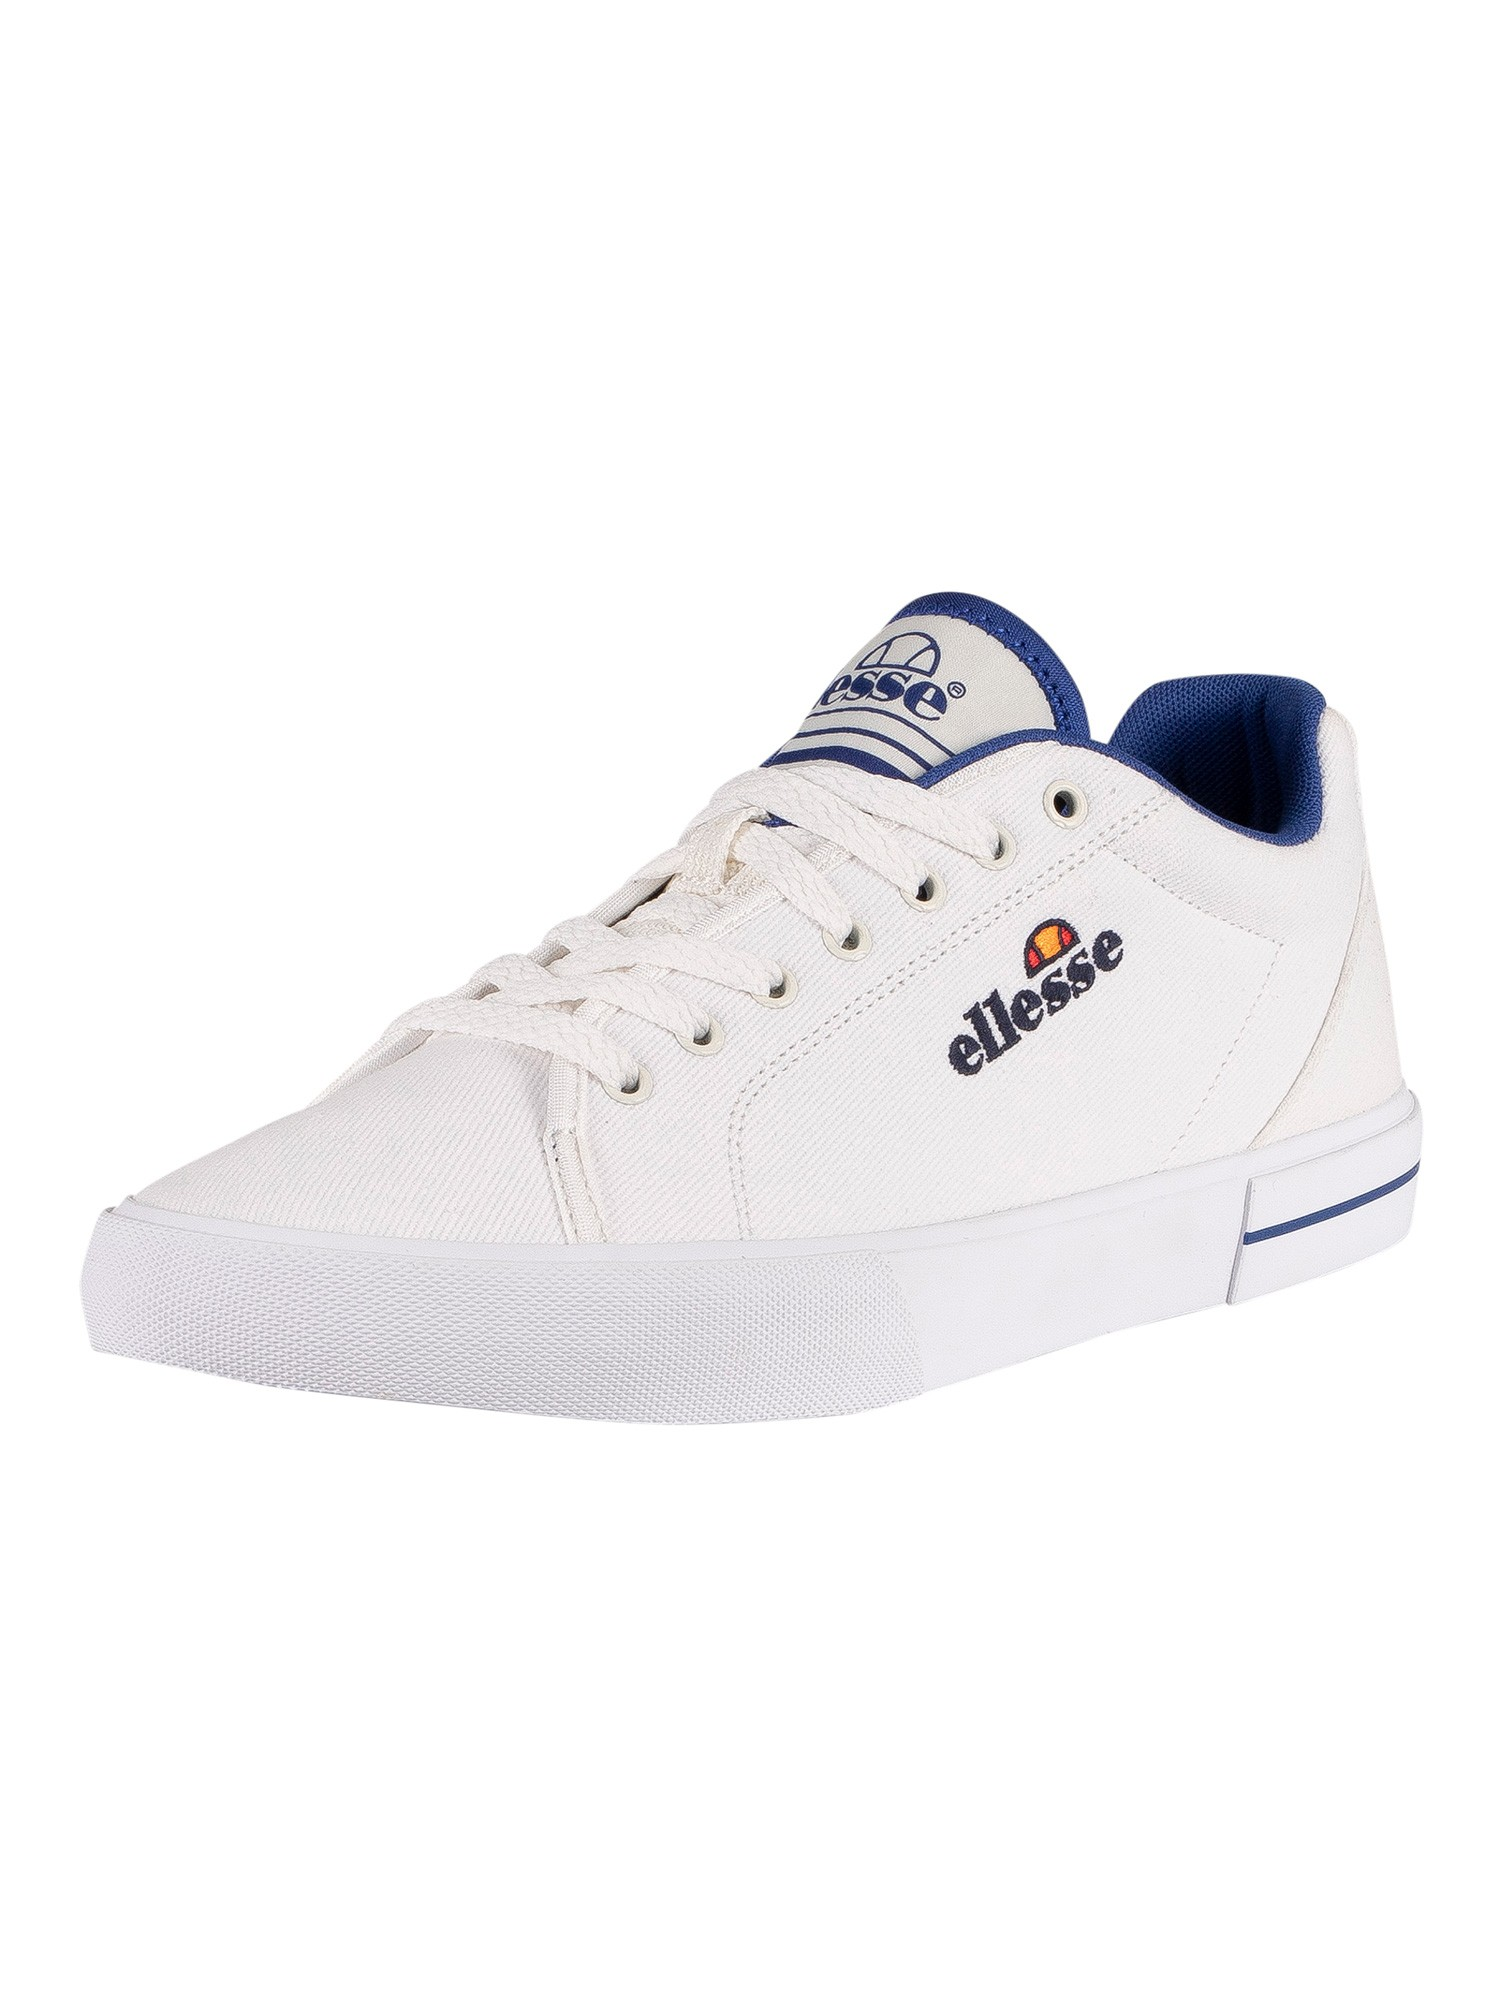 Ellesse Taggia Text Canvas Trainers - White/Dark Blue